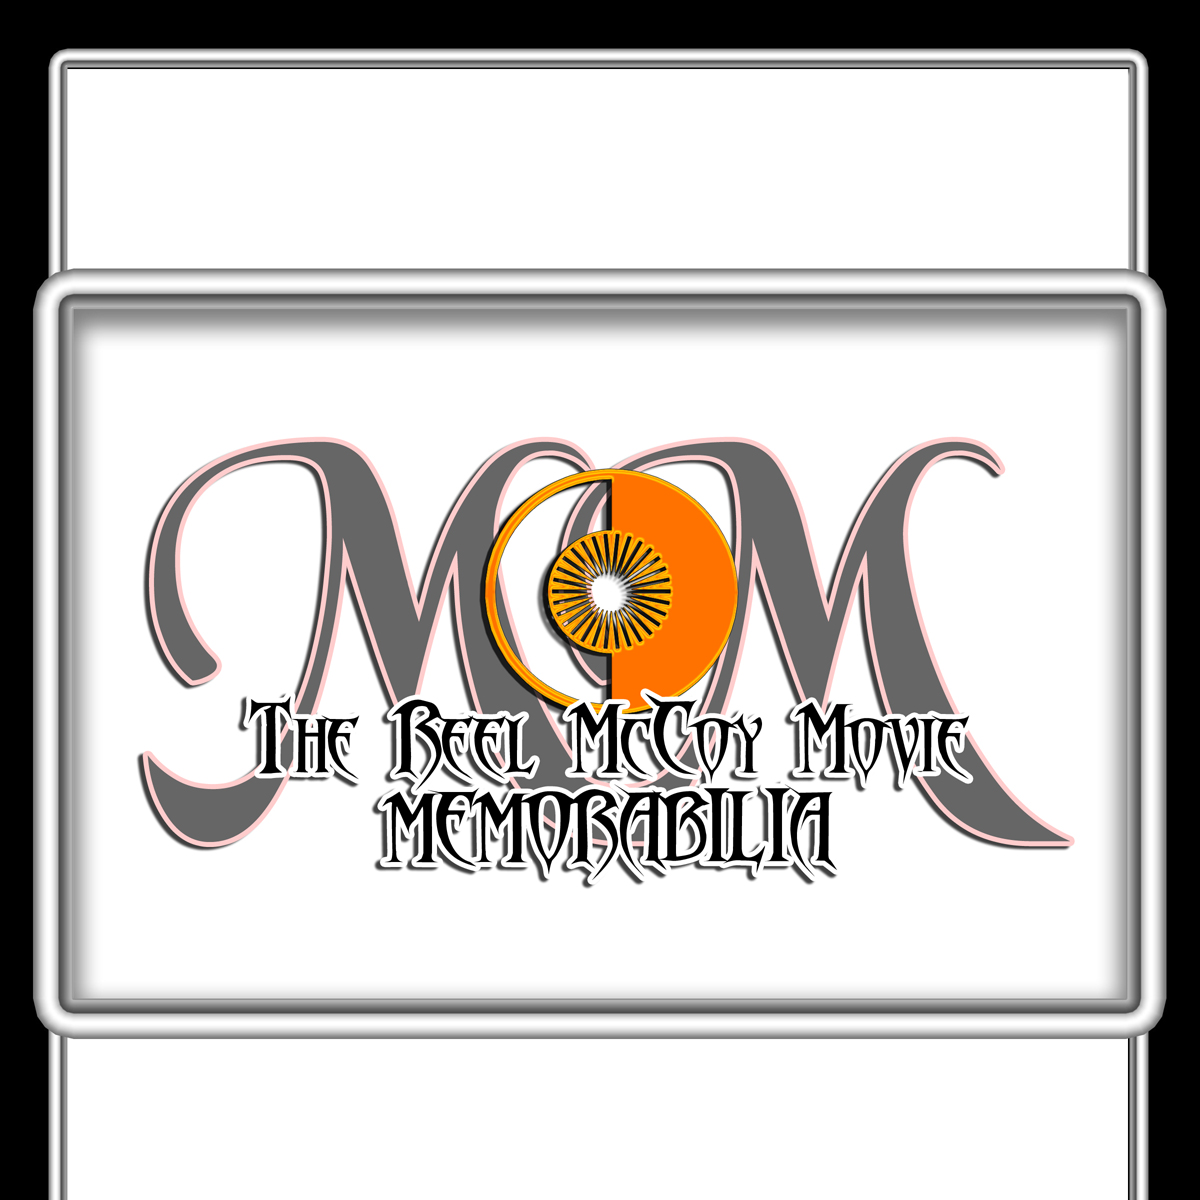 Logo Design by MITUCA ANDREI - Entry No. 7 in the Logo Design Contest Unique Logo Design Wanted for The Reel McCoy Movie Memorabilia.